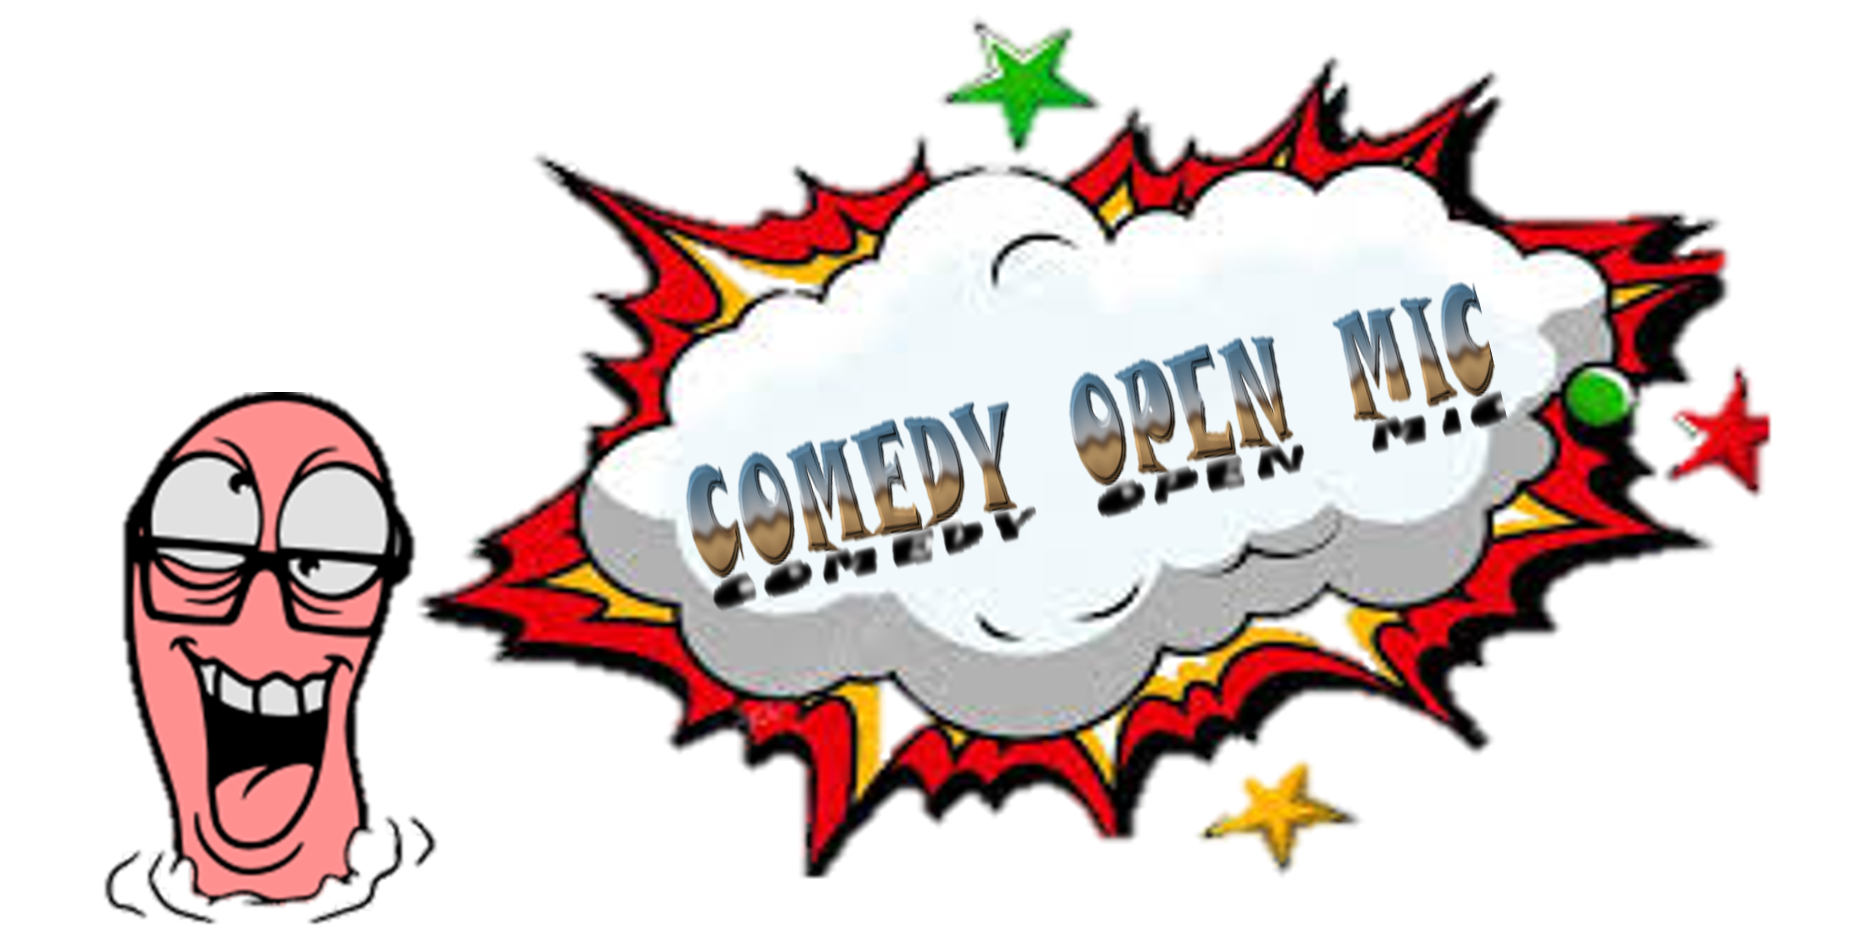 Clipart mouth wide open mouth. Comedy mic logo and